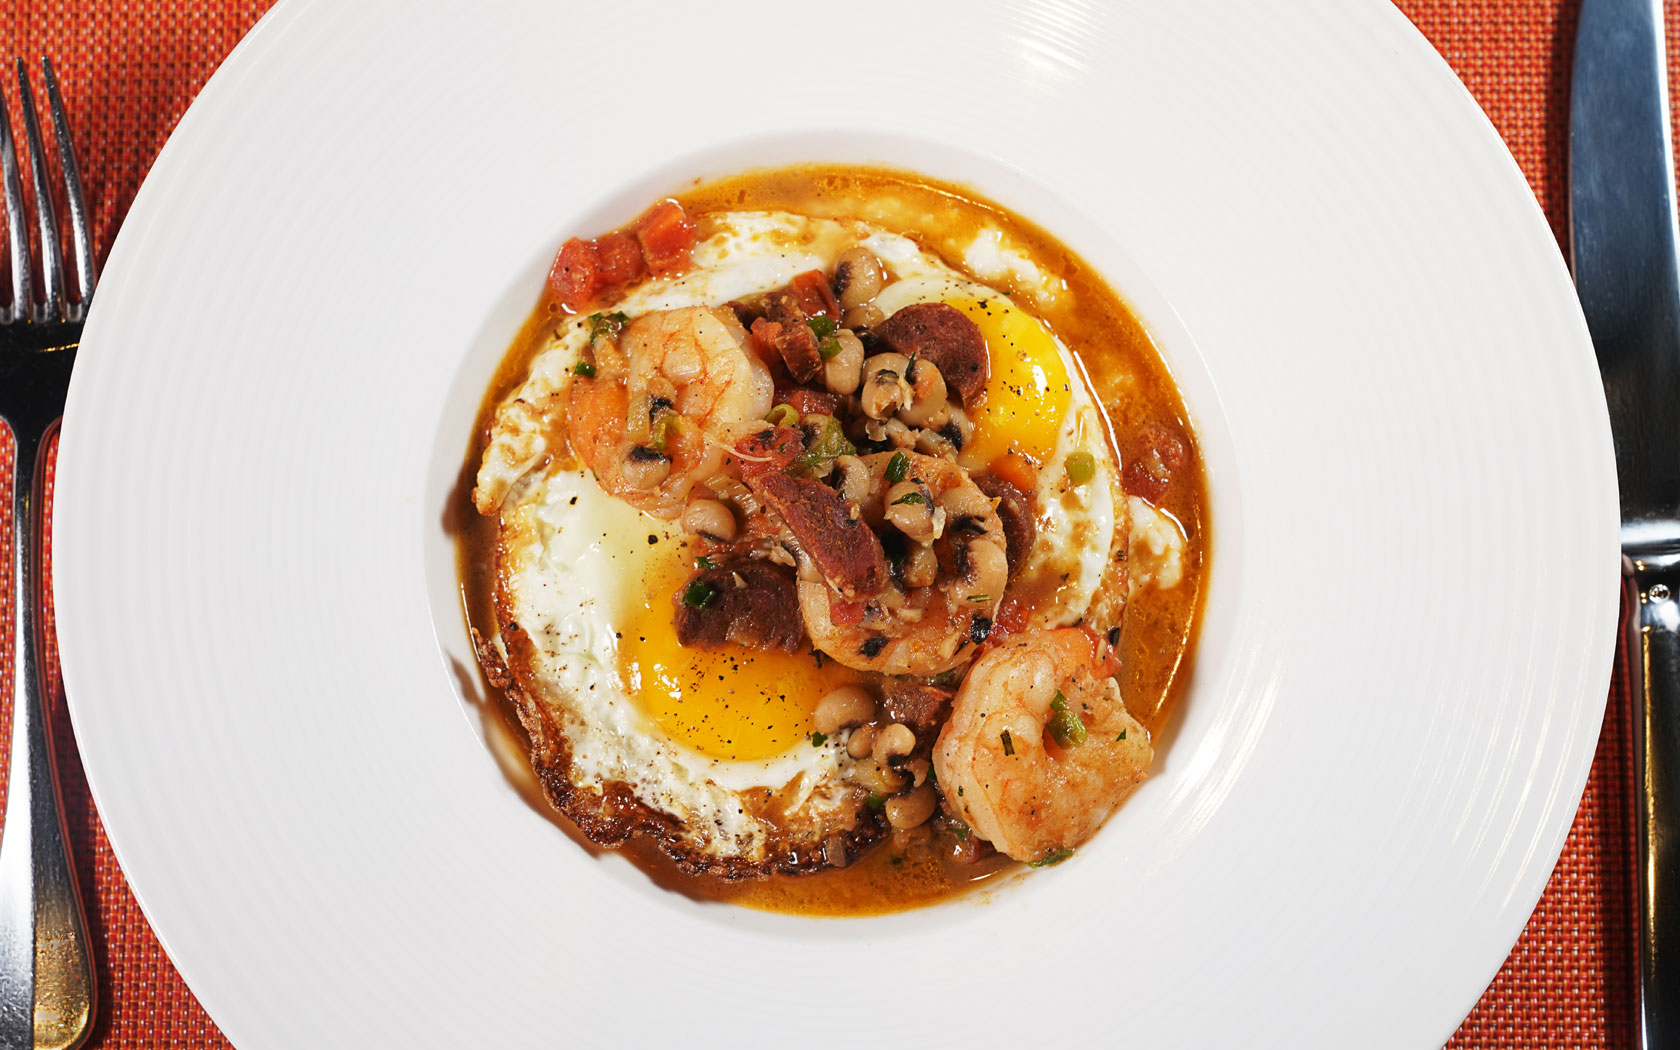 shrimp and eggs